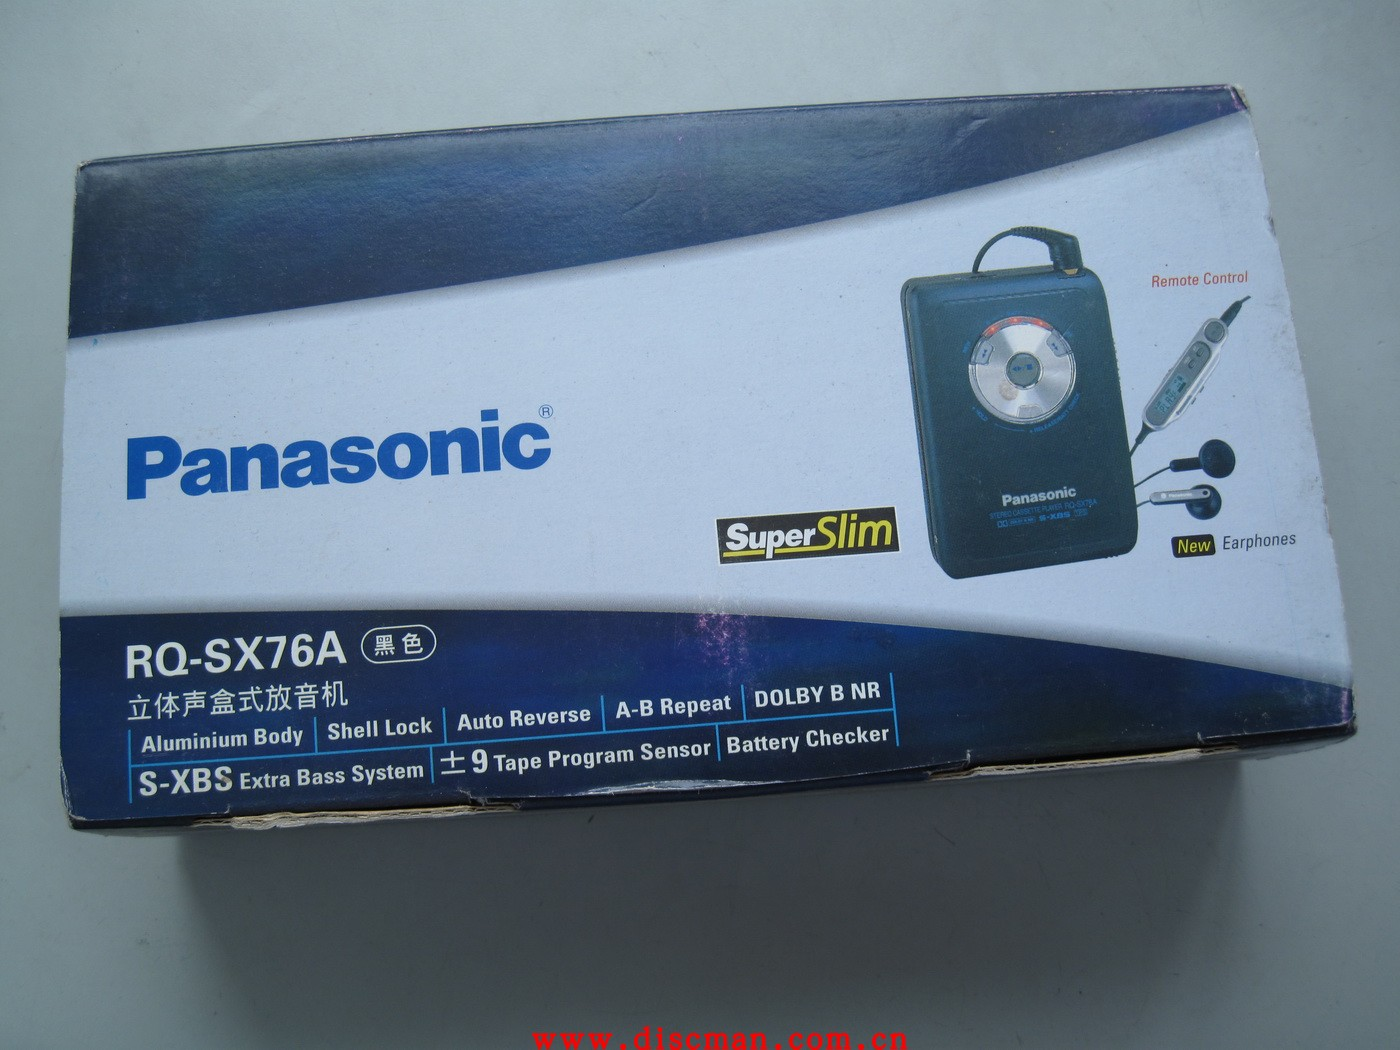 [The goods stop production and no stock]Panasonic Panasonic rq-sx76a tape player, brand new unused machine